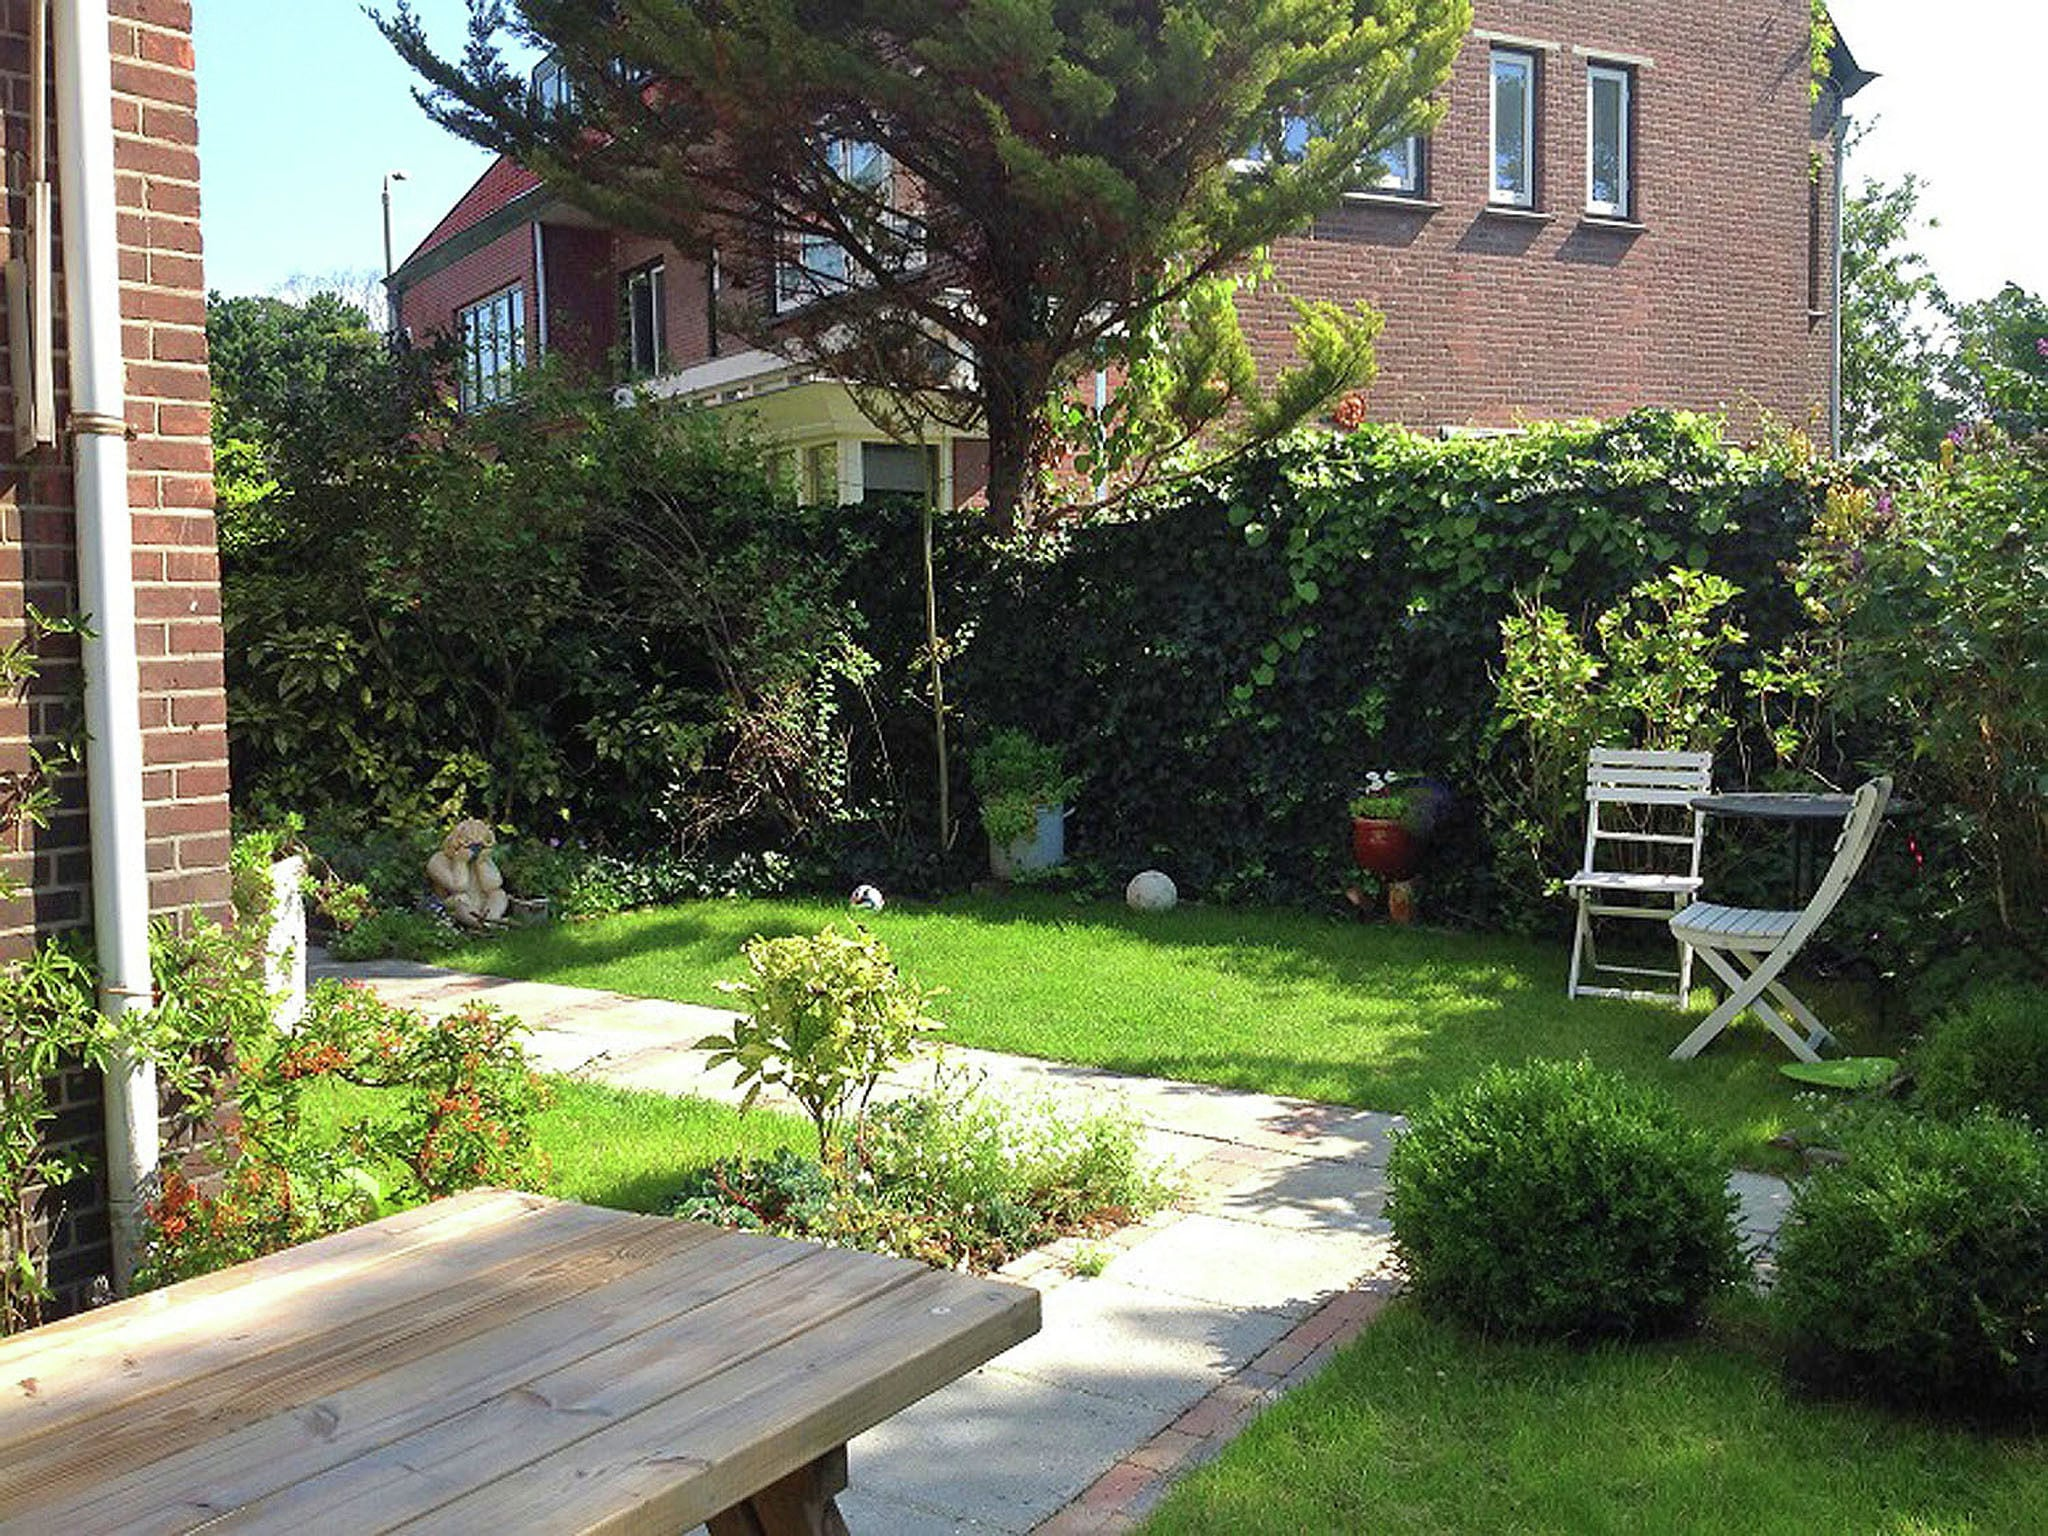 Holland | North Sea Coast South | Holiday home Achter de Duinen | Holidays | GardenSummer